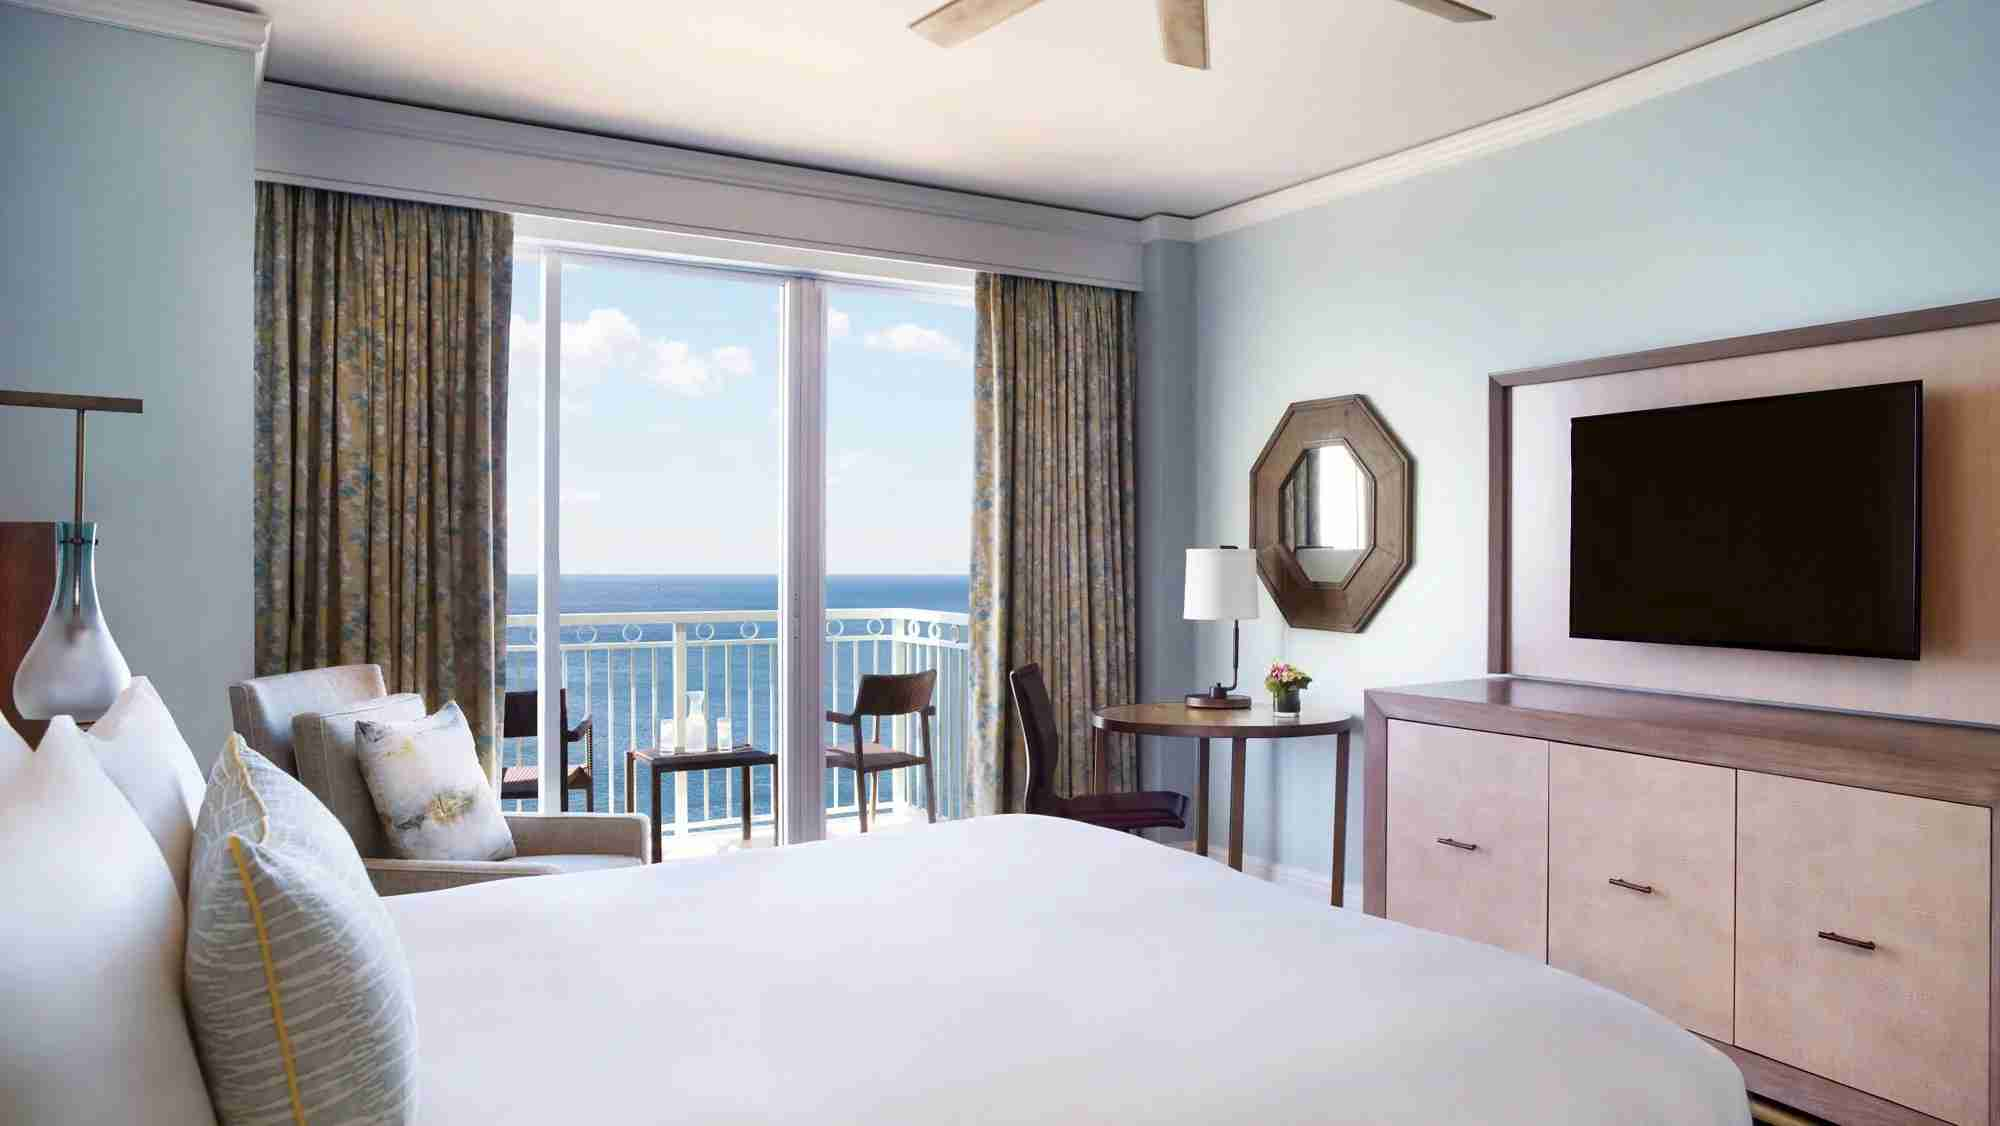 The Ritz-Carlton Key Biscayne in Miami, Florida. (Photo courtesy of the hotel)